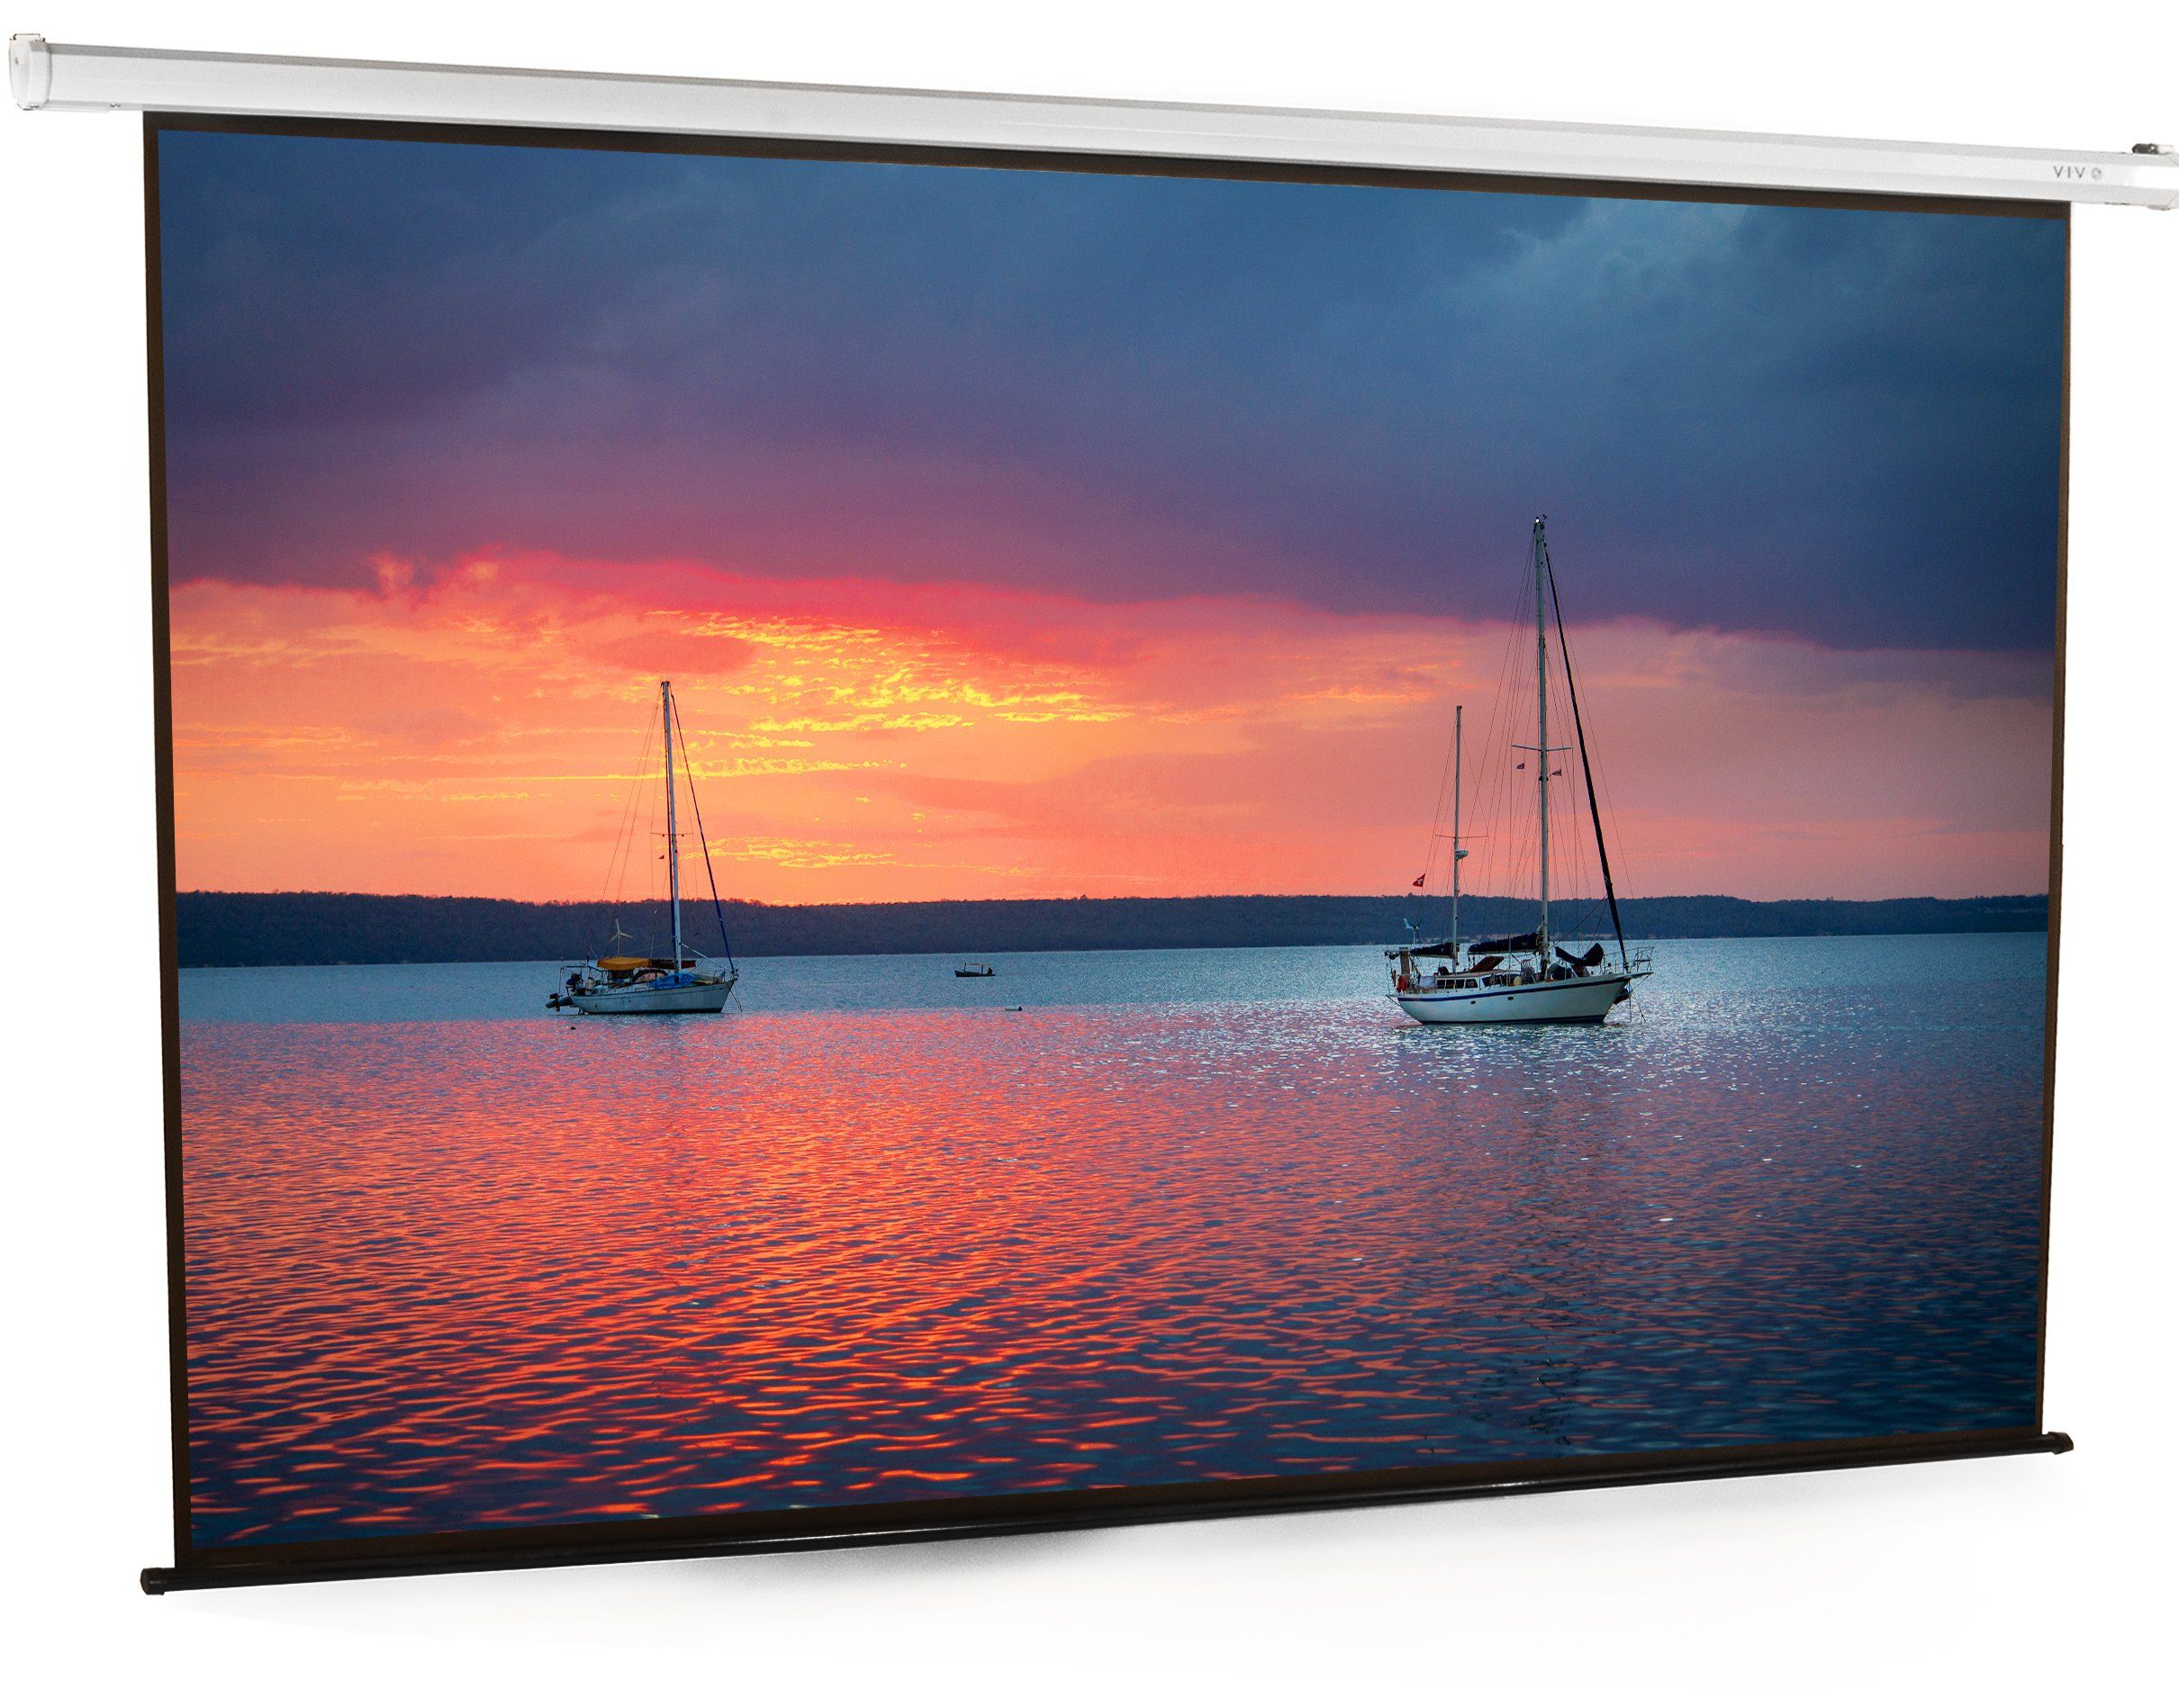 Vivo 100 Electric Motorized Projector Screen 100 Inch Diagonal Auto With Remote 4 3 Projection Hd Pse100e Projector Screen Projector Pull Down Projector Screen